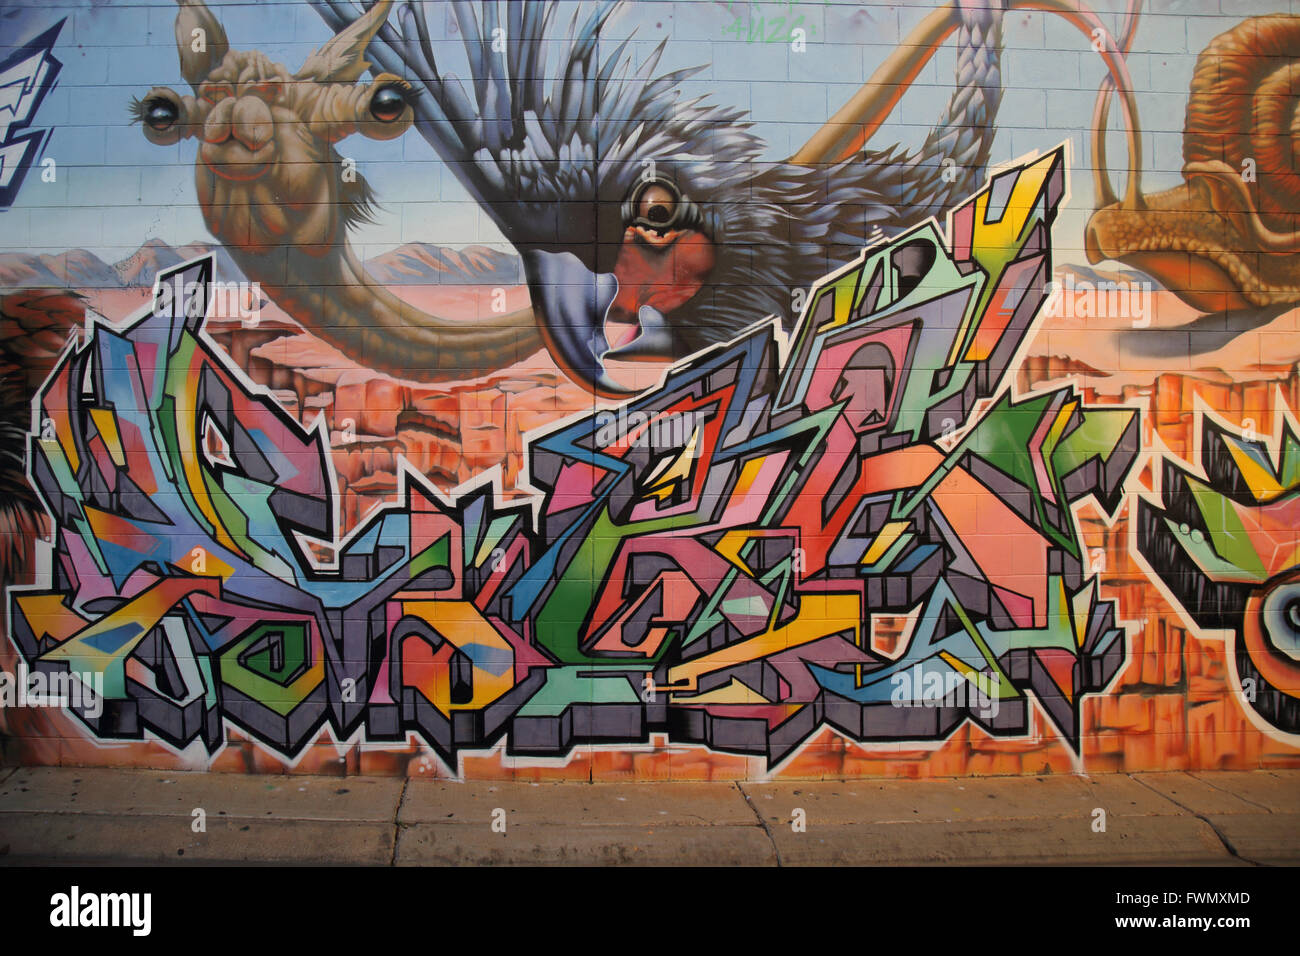 wall art in alice springs in the northern territory of australia - Stock Image